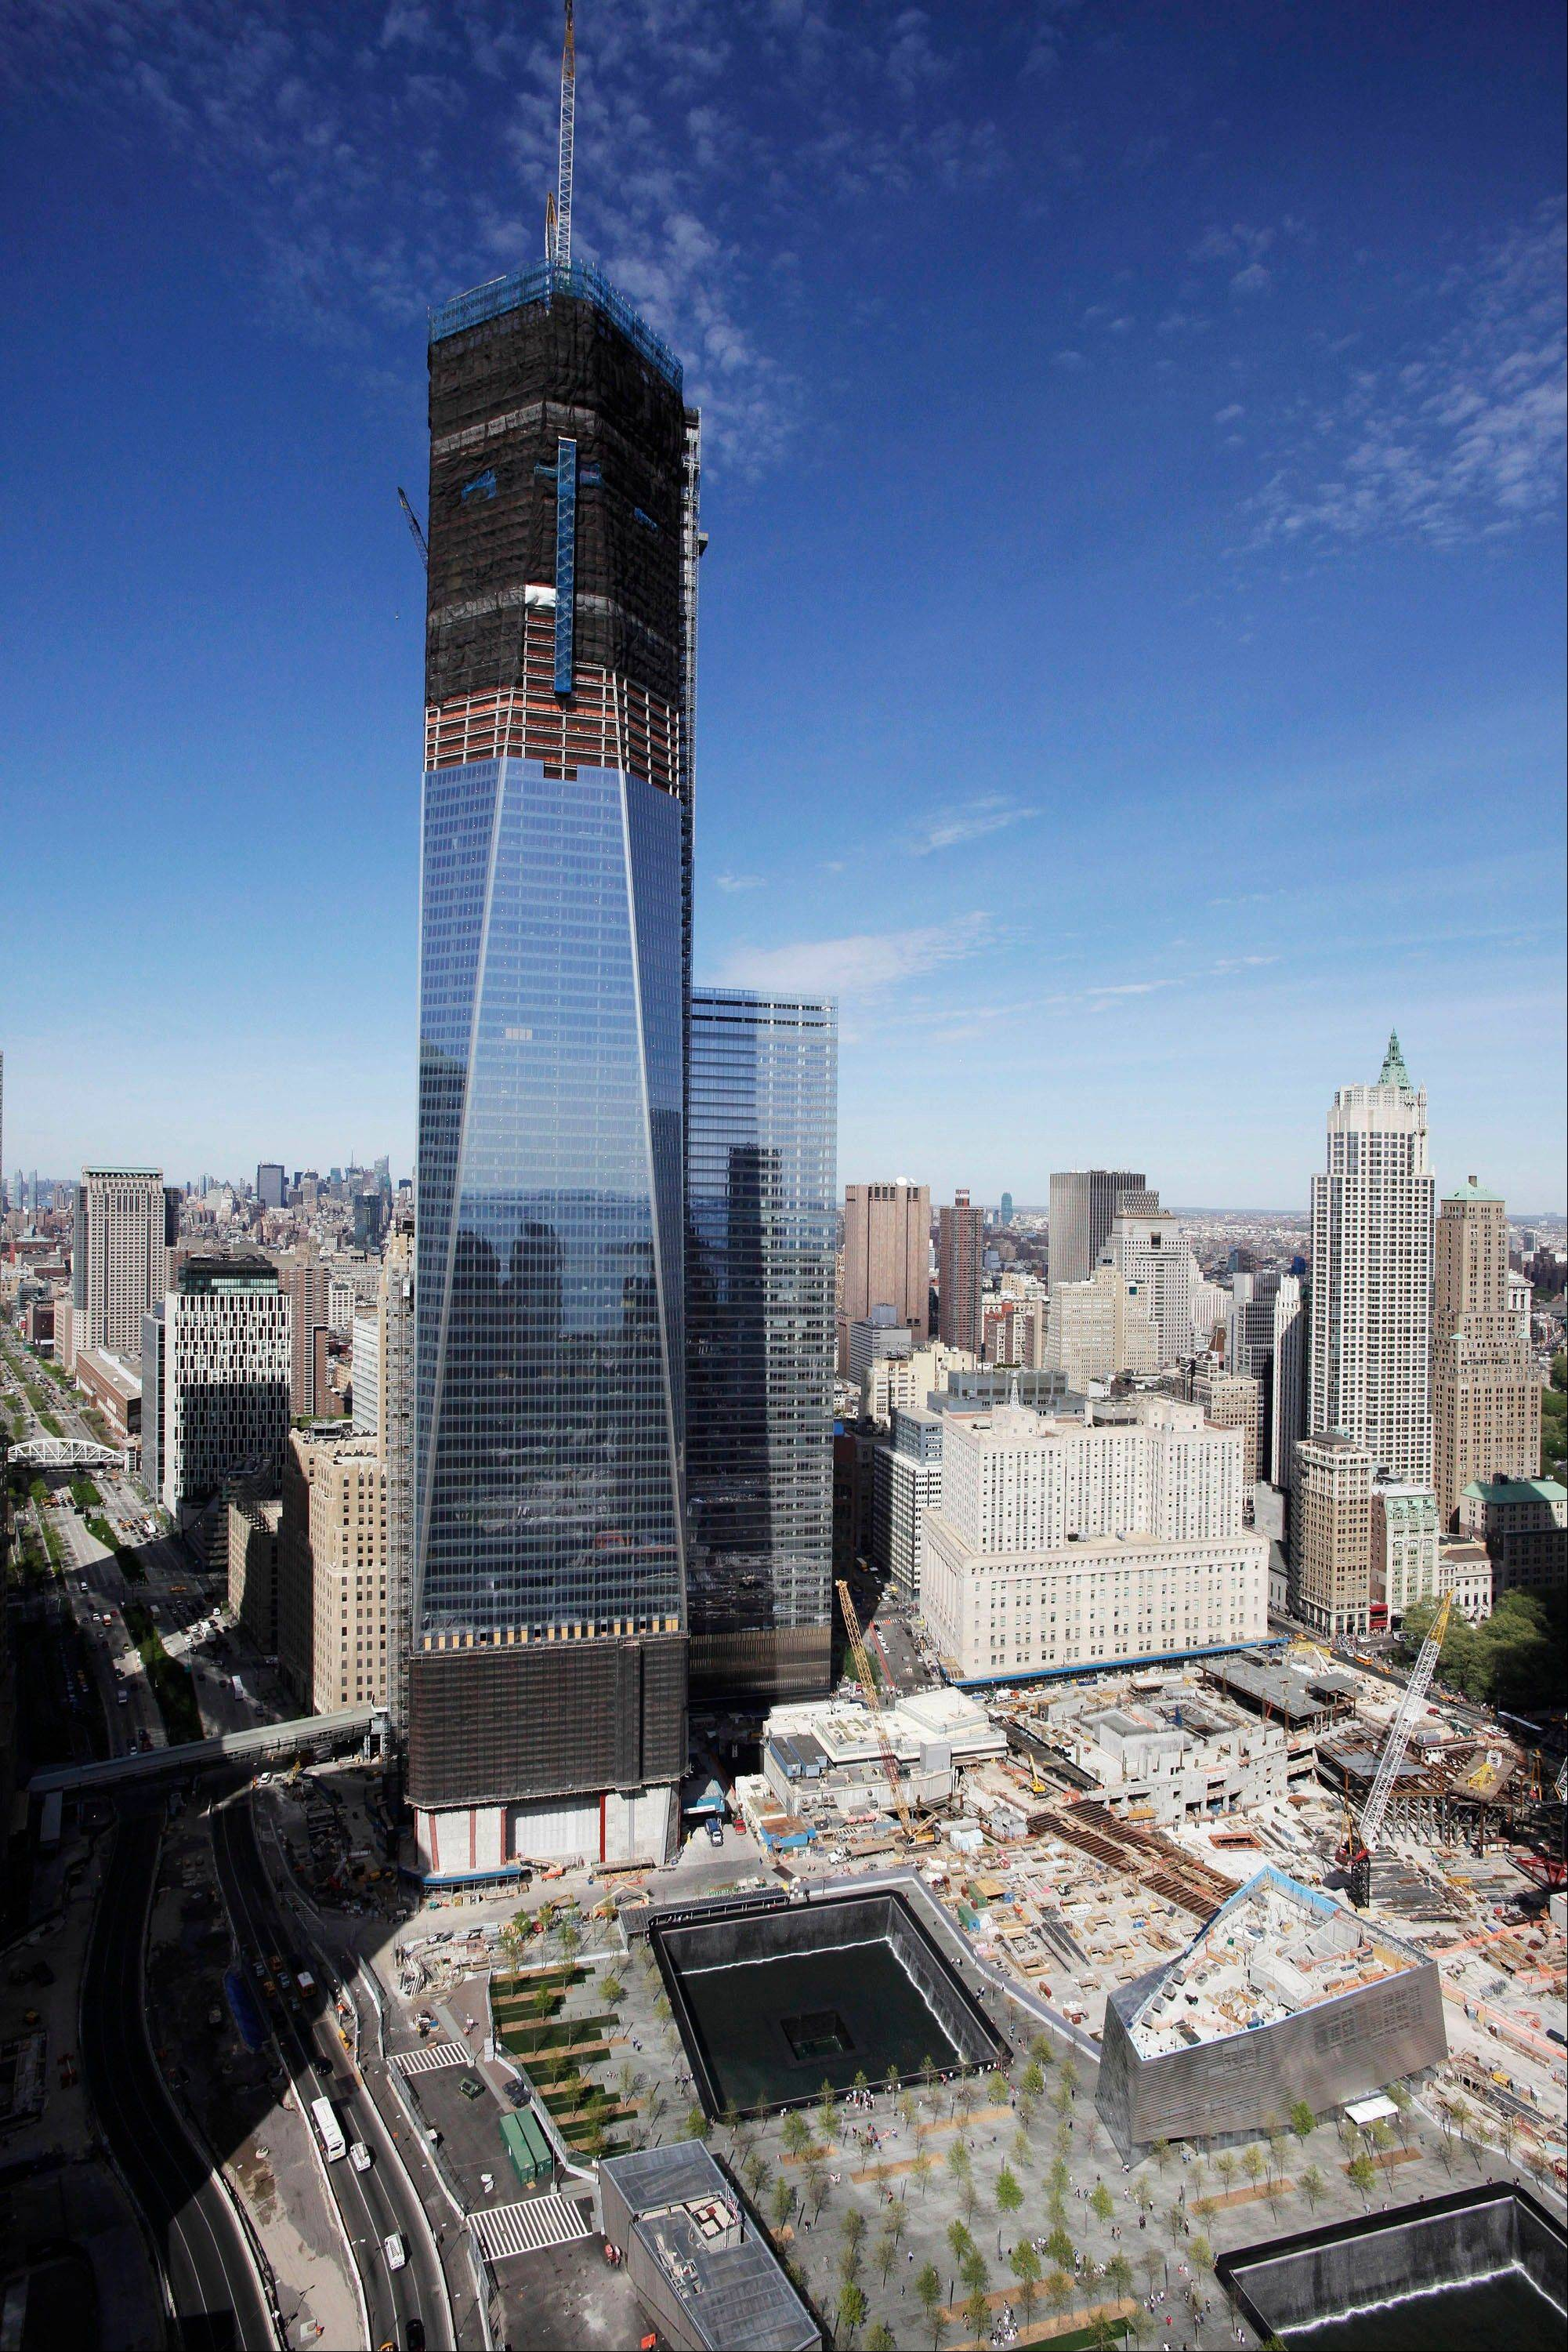 One World Trade Center rises above the lower Manhattan skyline and the National September 11 Memorial and Museum in New York. Eleven years after terrorists attacked the World Trade Center, the new World Trade Center now dominates the lower Manhattan skyline.